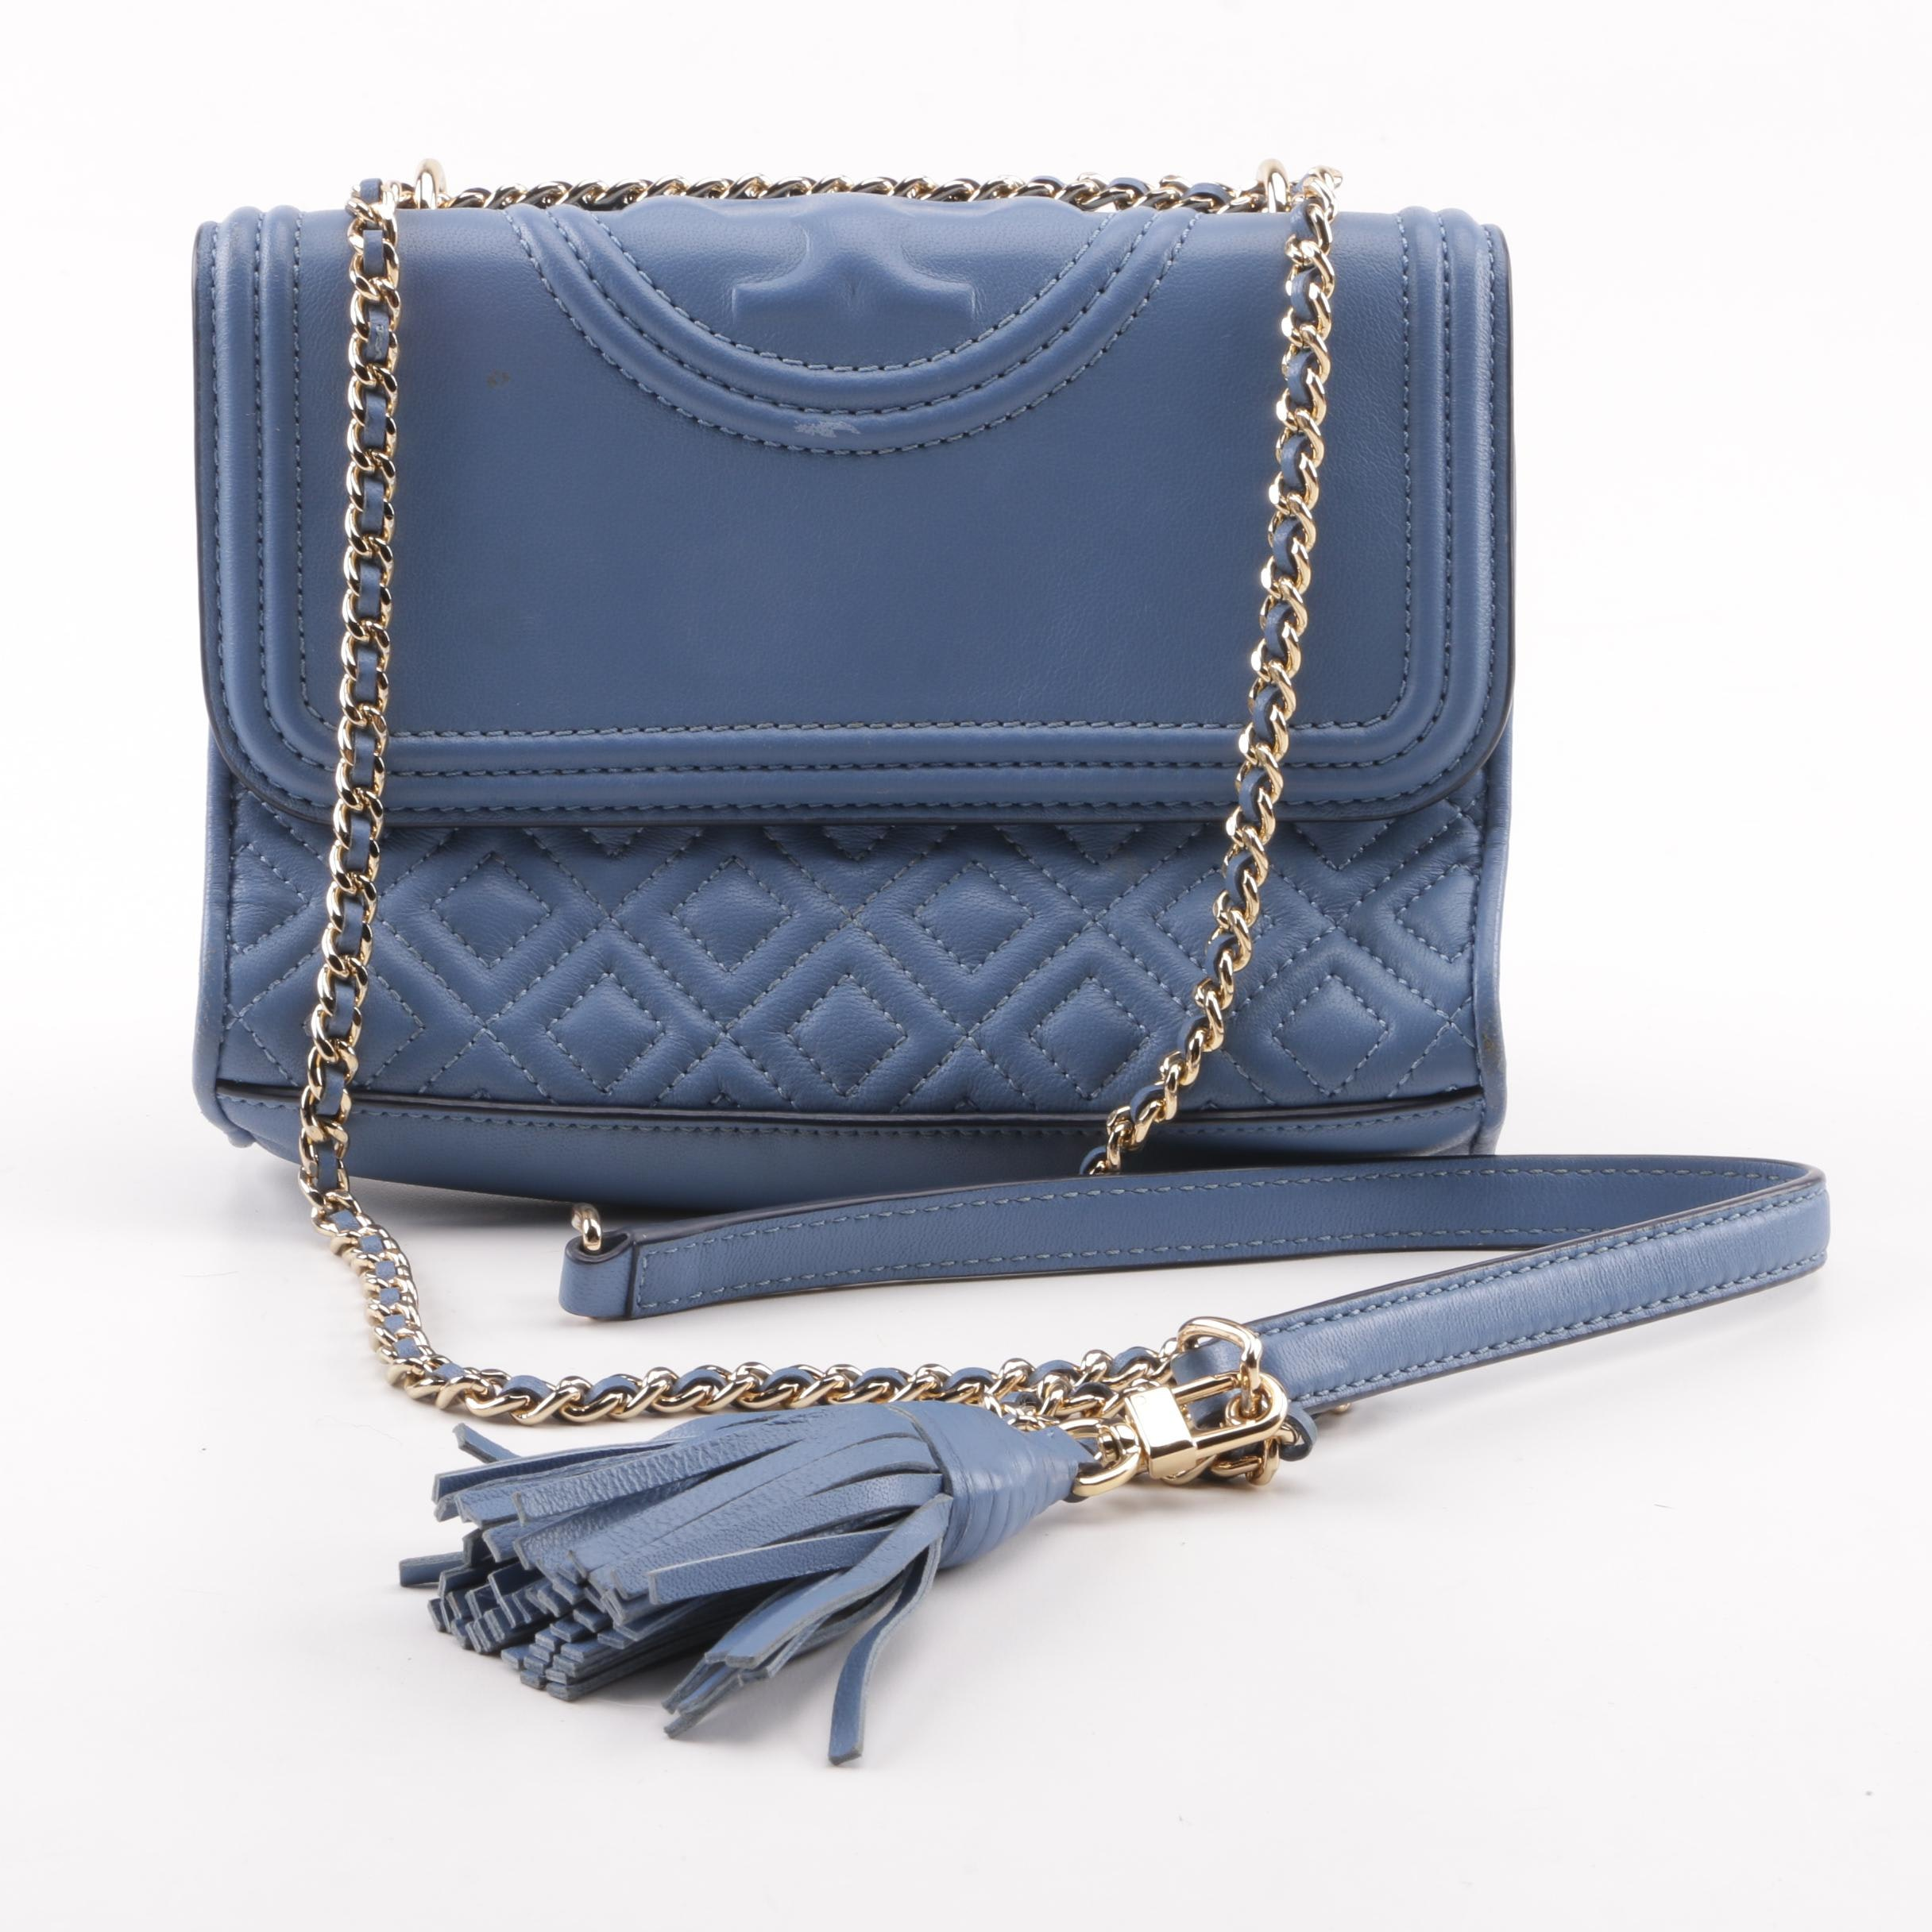 Tory Burch Fleming Blue Quilted Leather Crossbody Bag